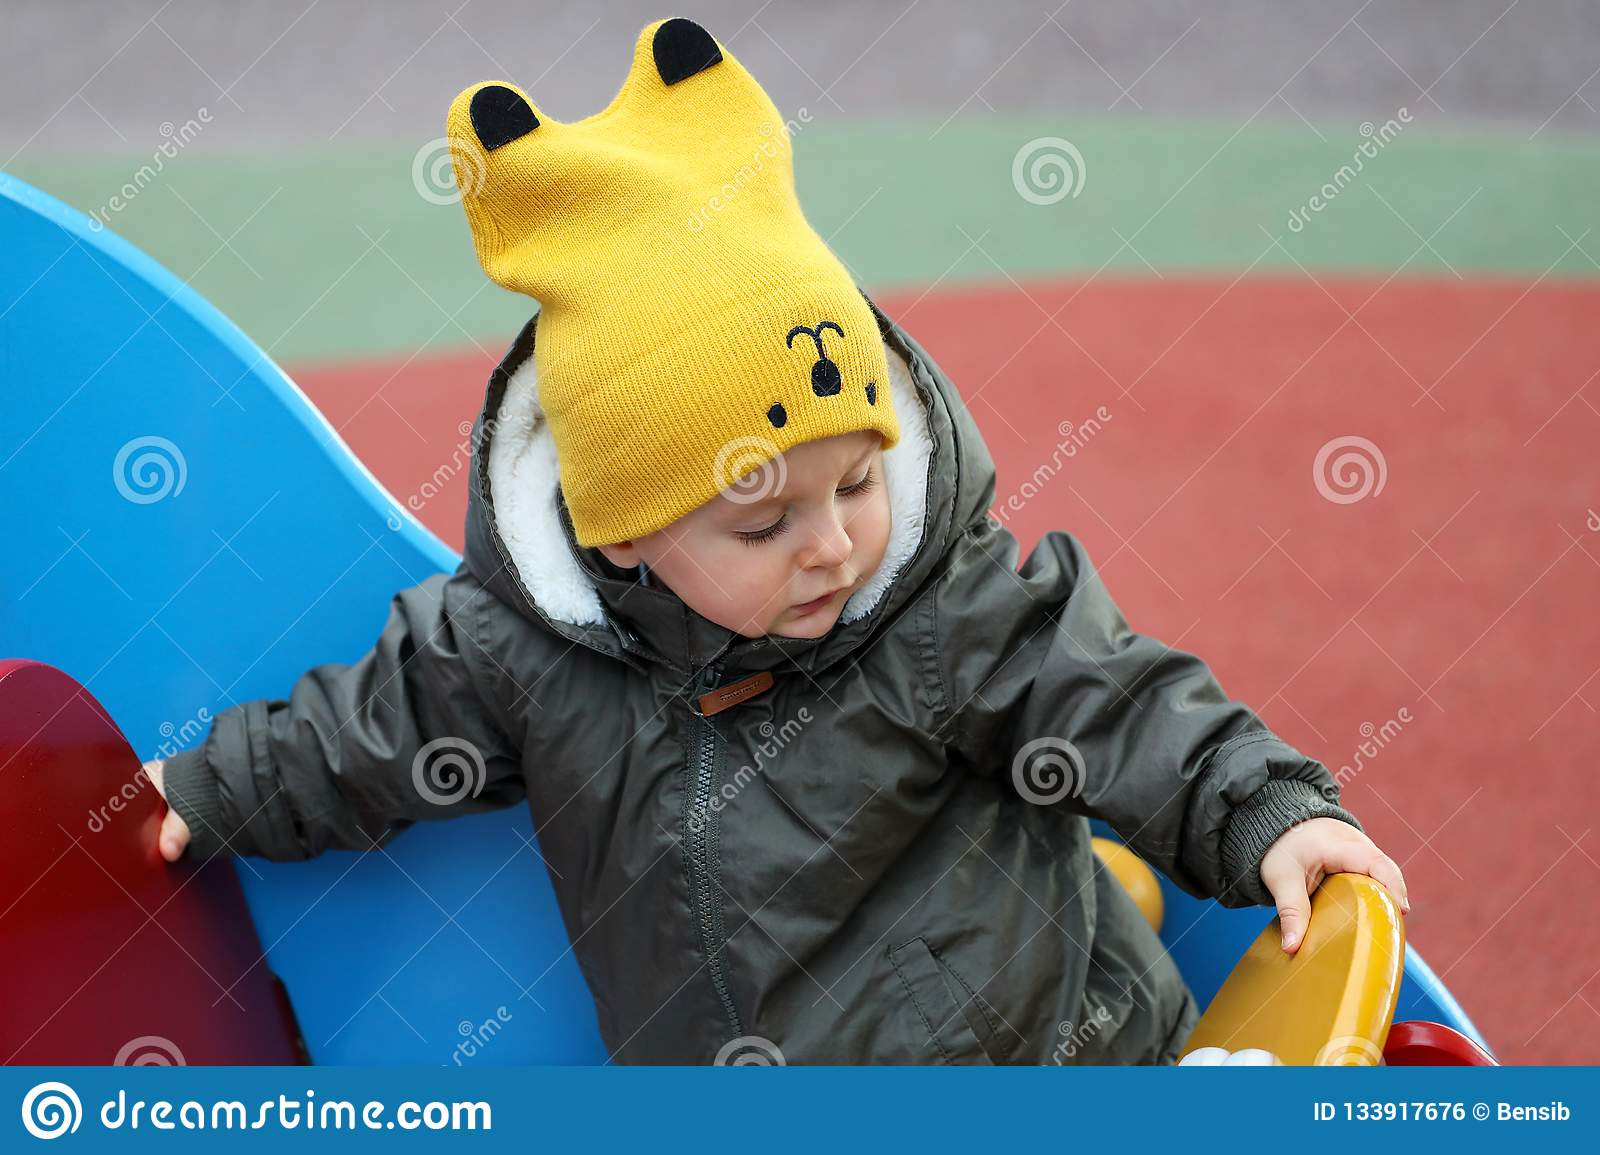 c45364f5ec1 Baby With A Funny Yellow Hat And A Winter Jacket Stock Photo - Image ...